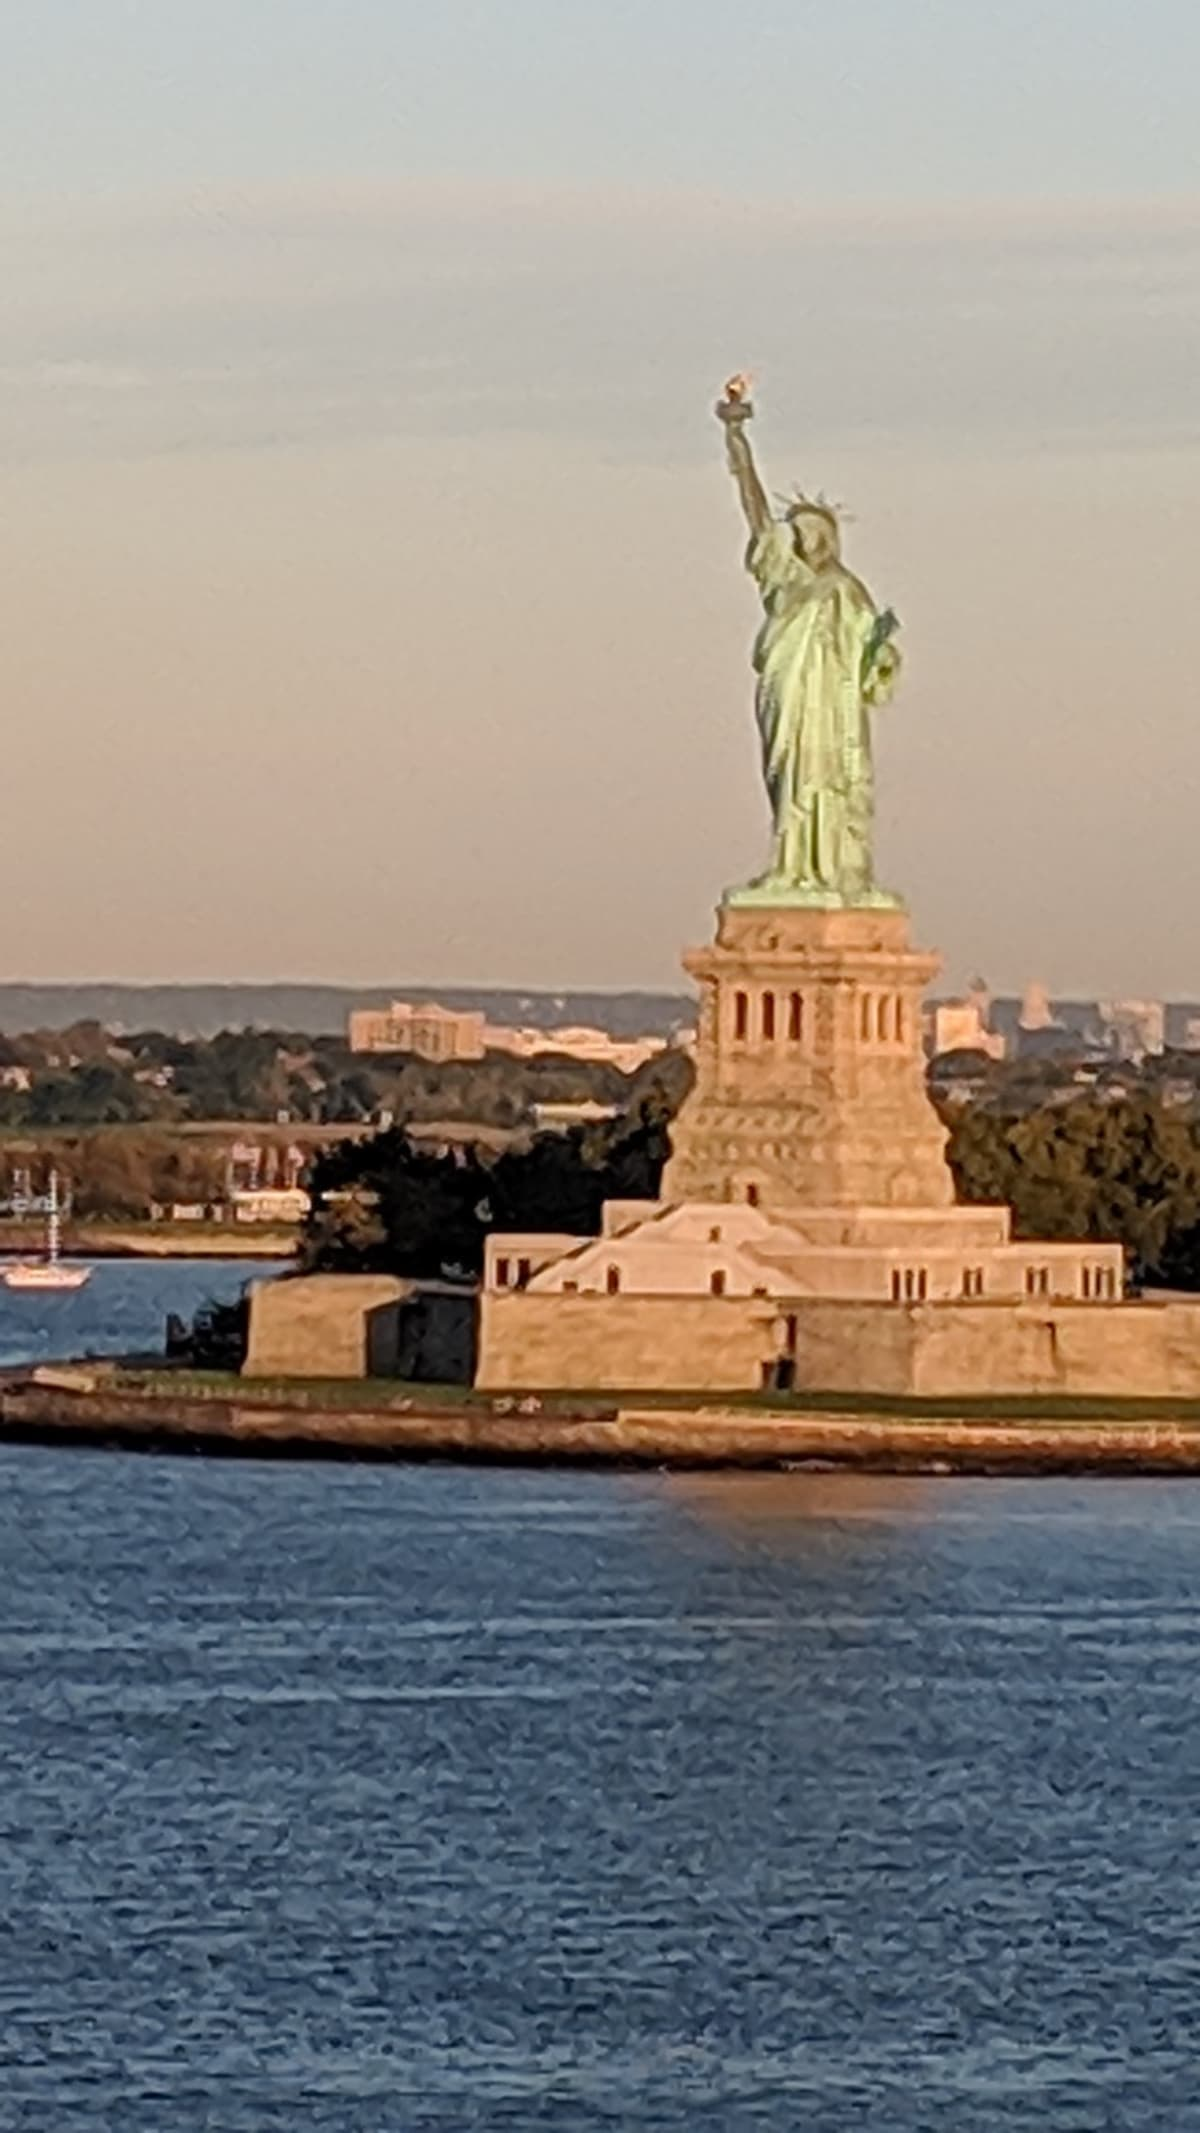 Passing Statue of liberty at 7am | ケープ・リバティ(ニューヨーク)